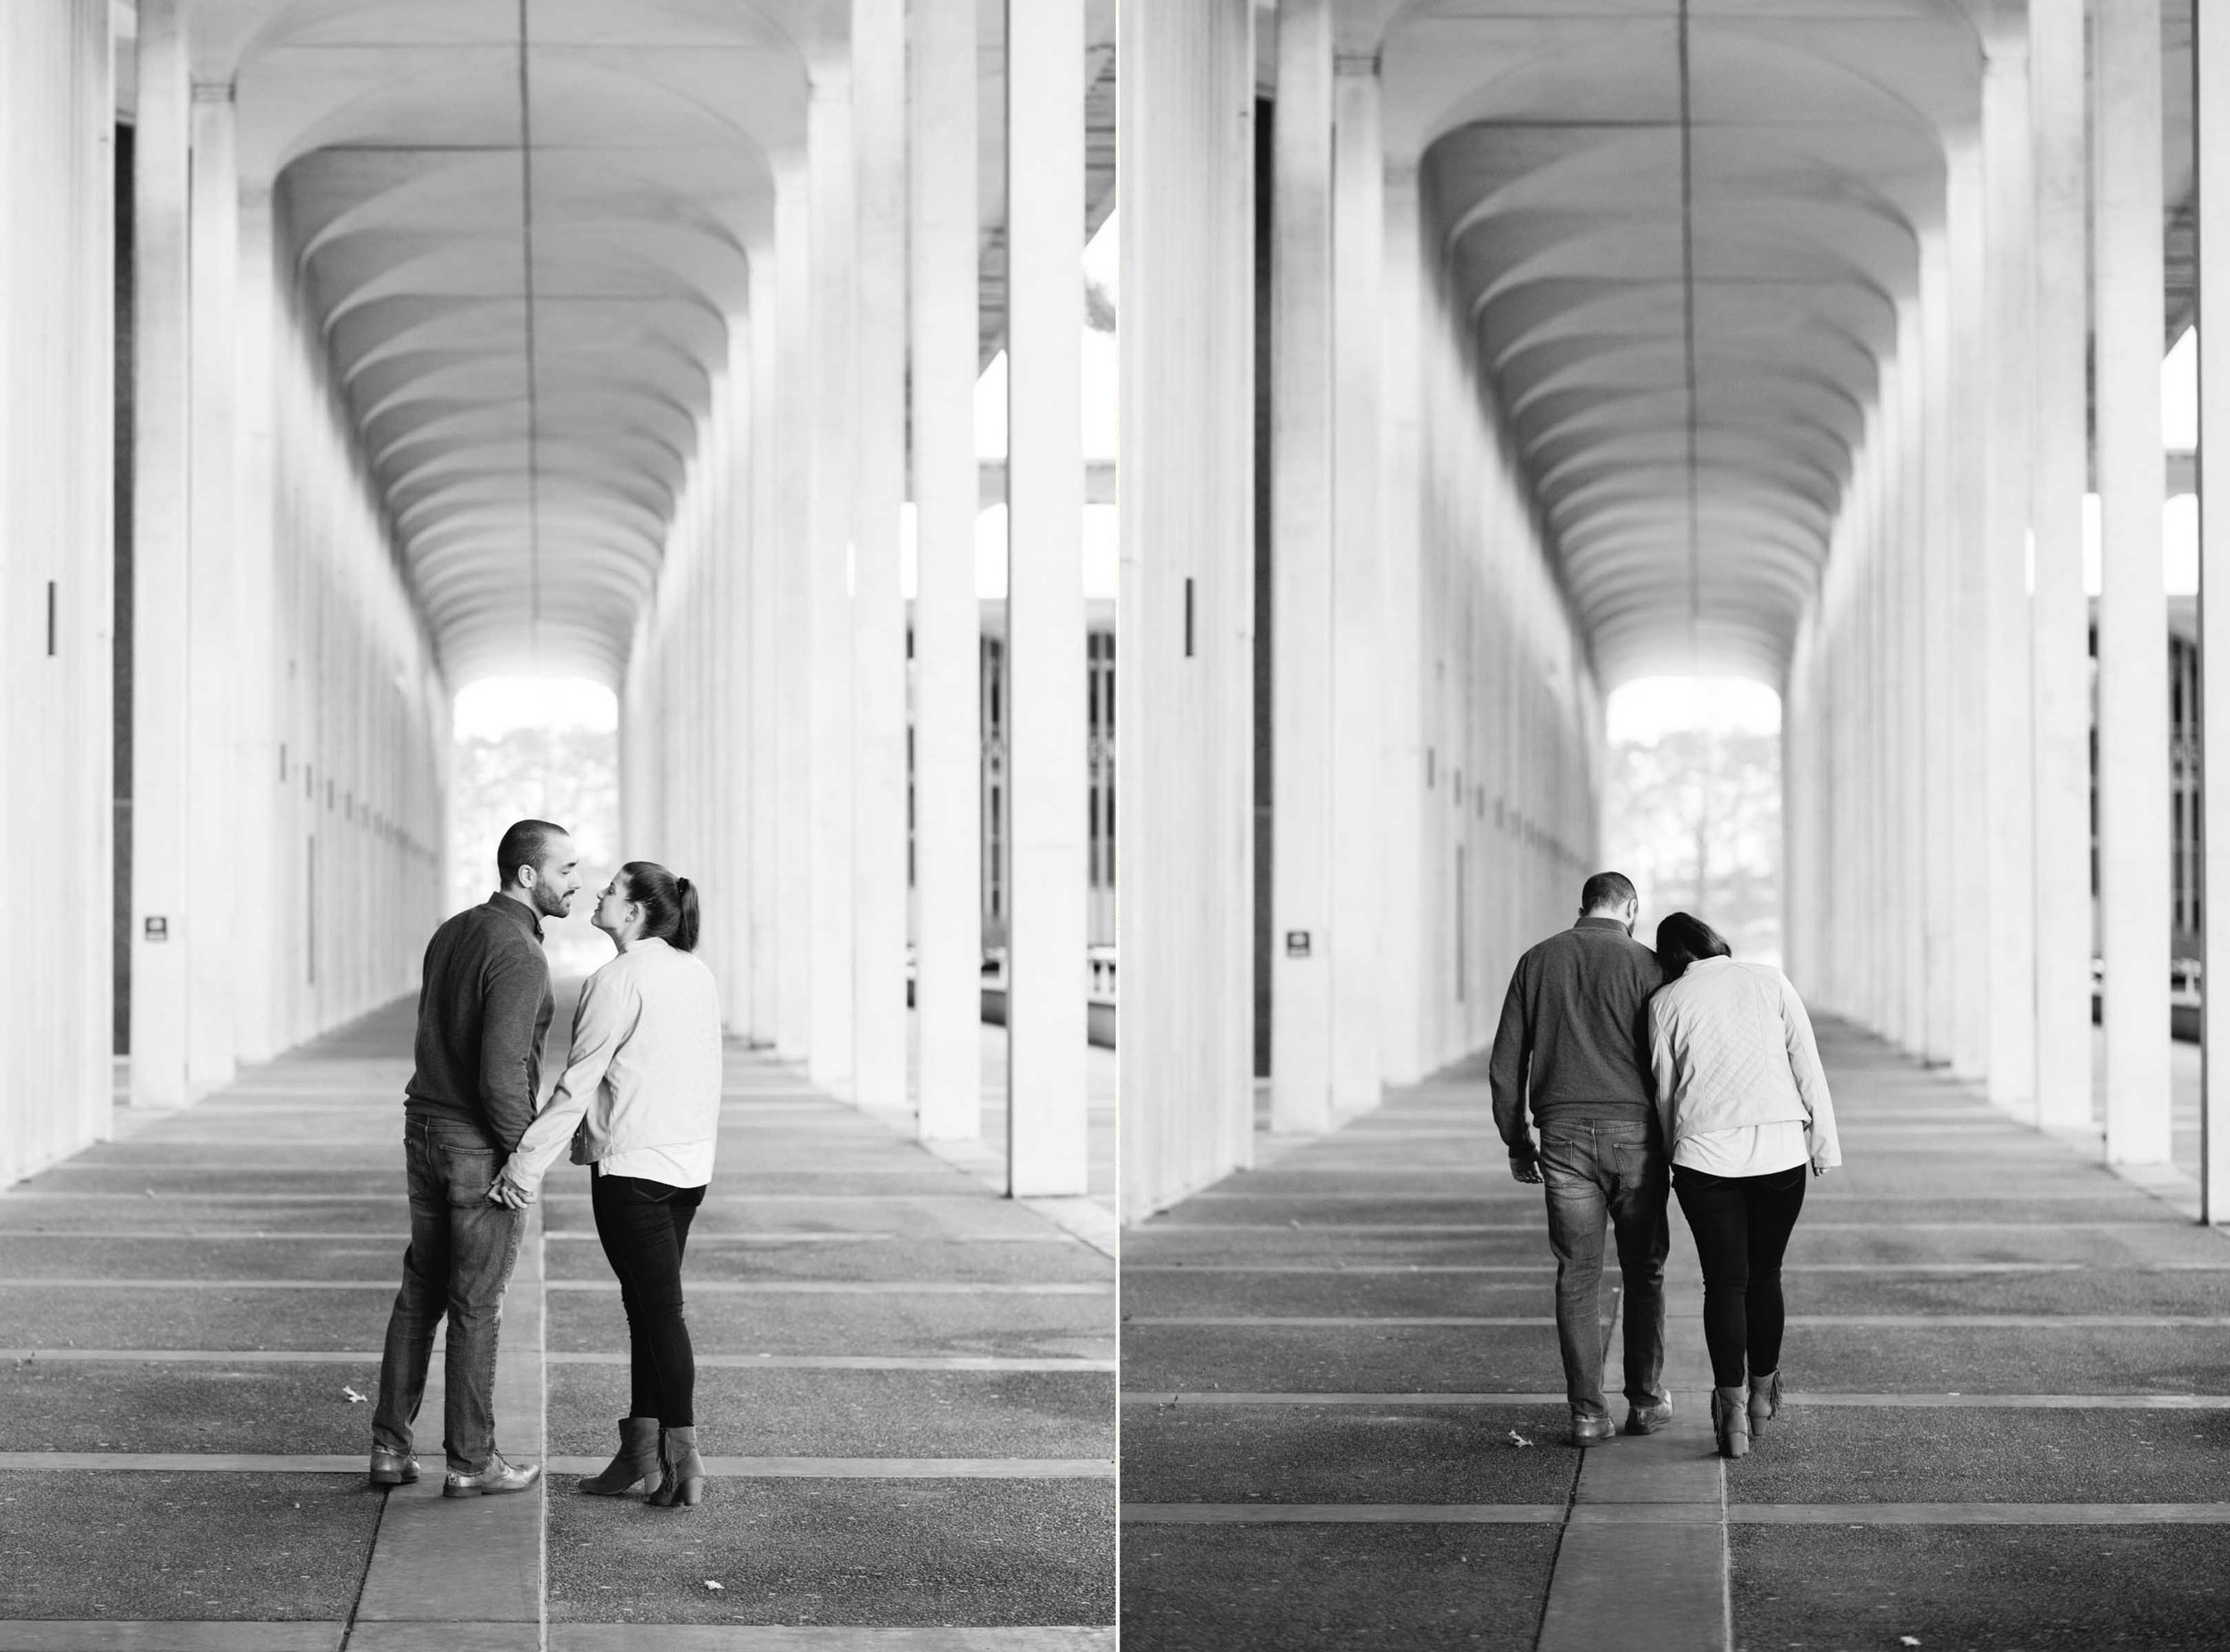 A young caucasian man and woman lean in to kiss under some arches on the University of Albany campus.